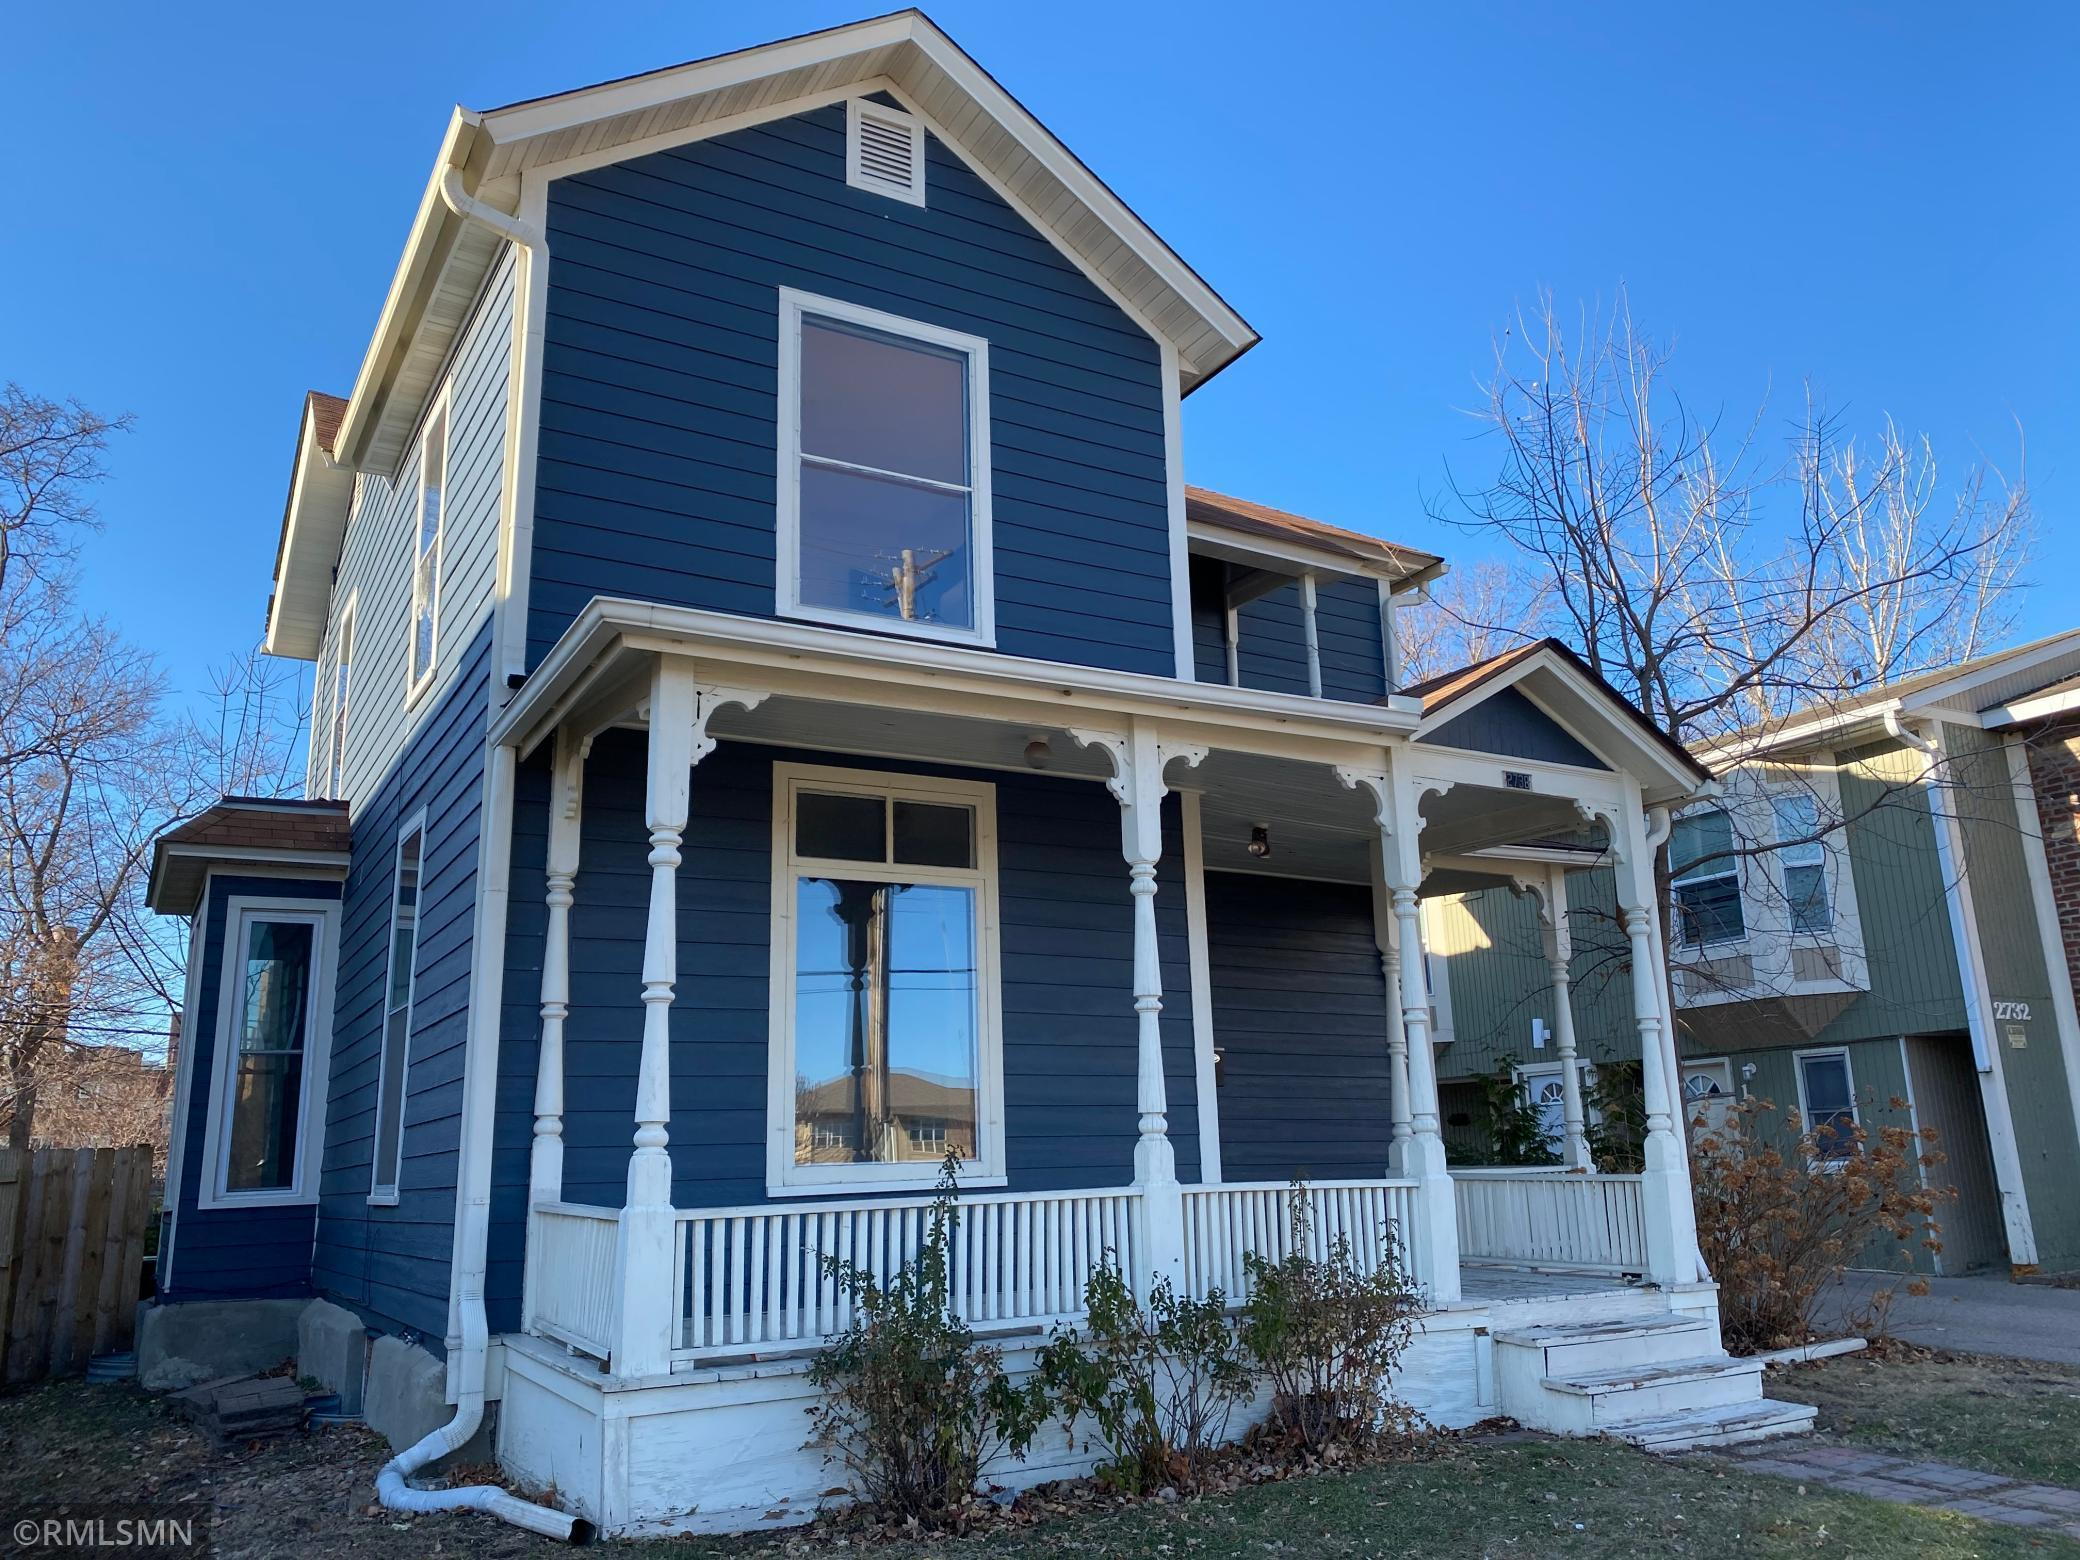 3 bedroom, 1.5 bath home located in Minneapolis. This home includes a large open front porch, spacious rooms and a fair sized lot. Located near shopping, restaurants and much more!